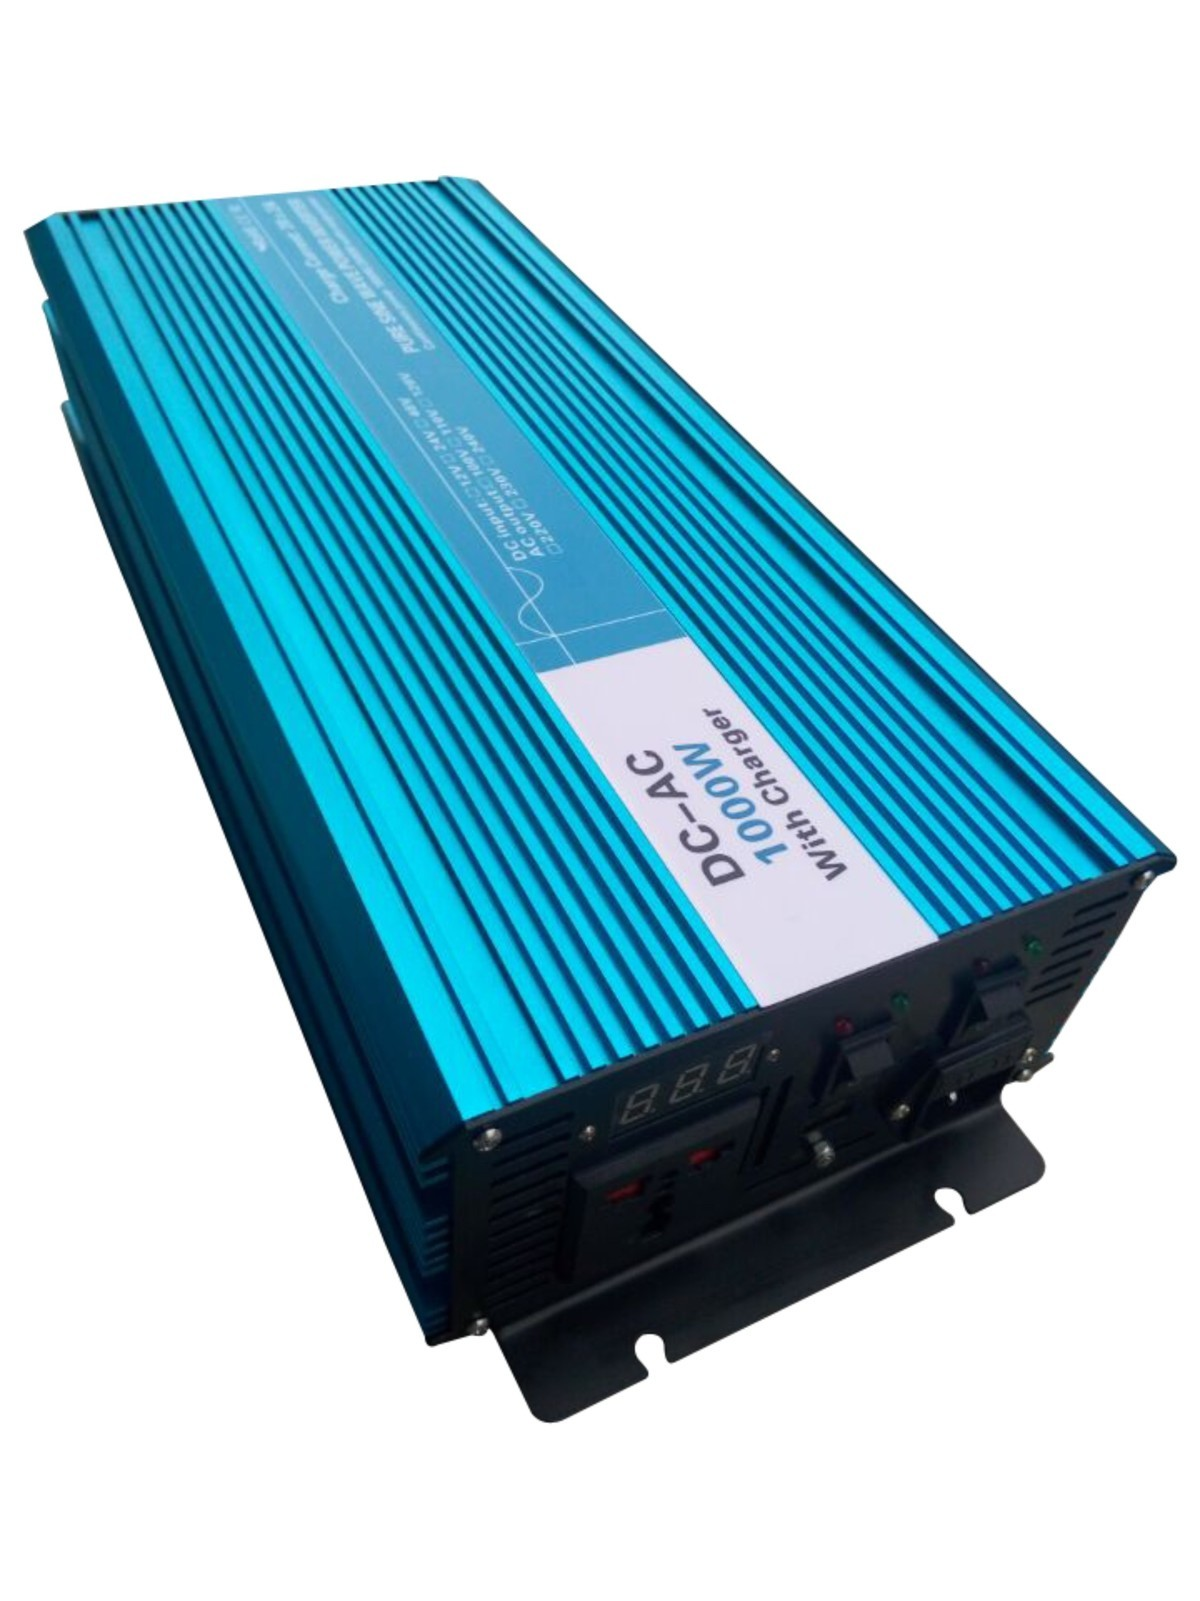 1000W Pure Sine Wave Inverter,DC 12V/24V/48V To AC 110V/220V,off grid Solar power Inverter,voltage Converter with charger/UPS